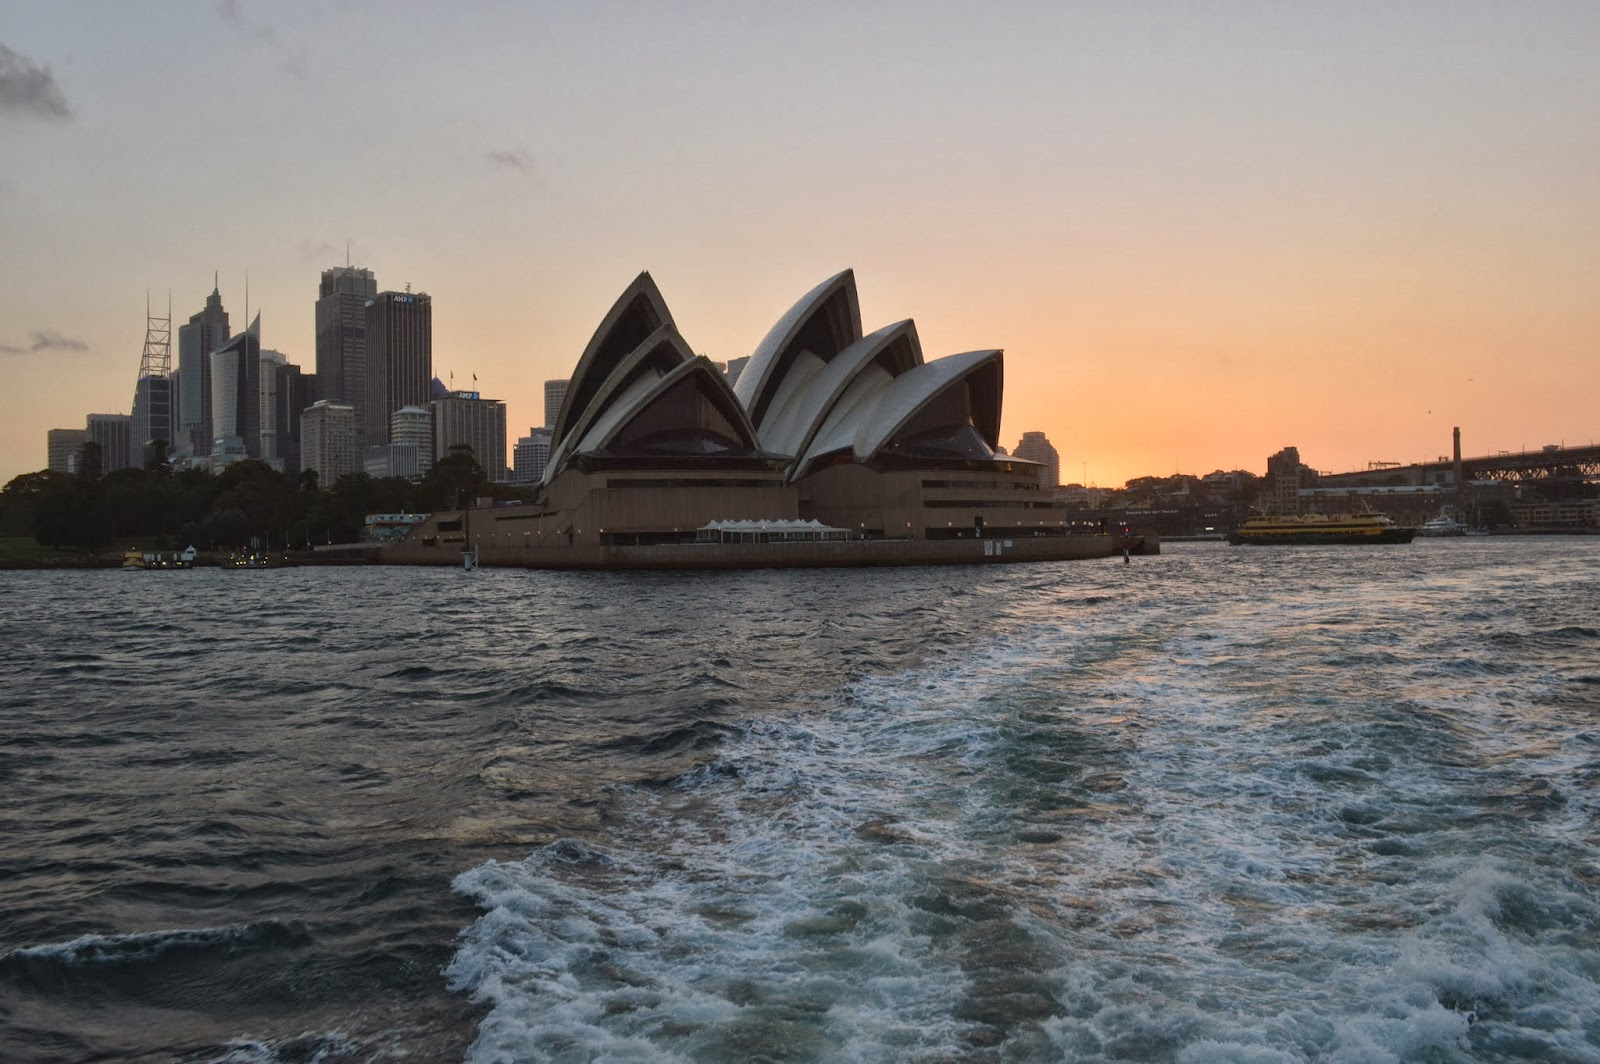 Sydney Opera House against an orange sunset.